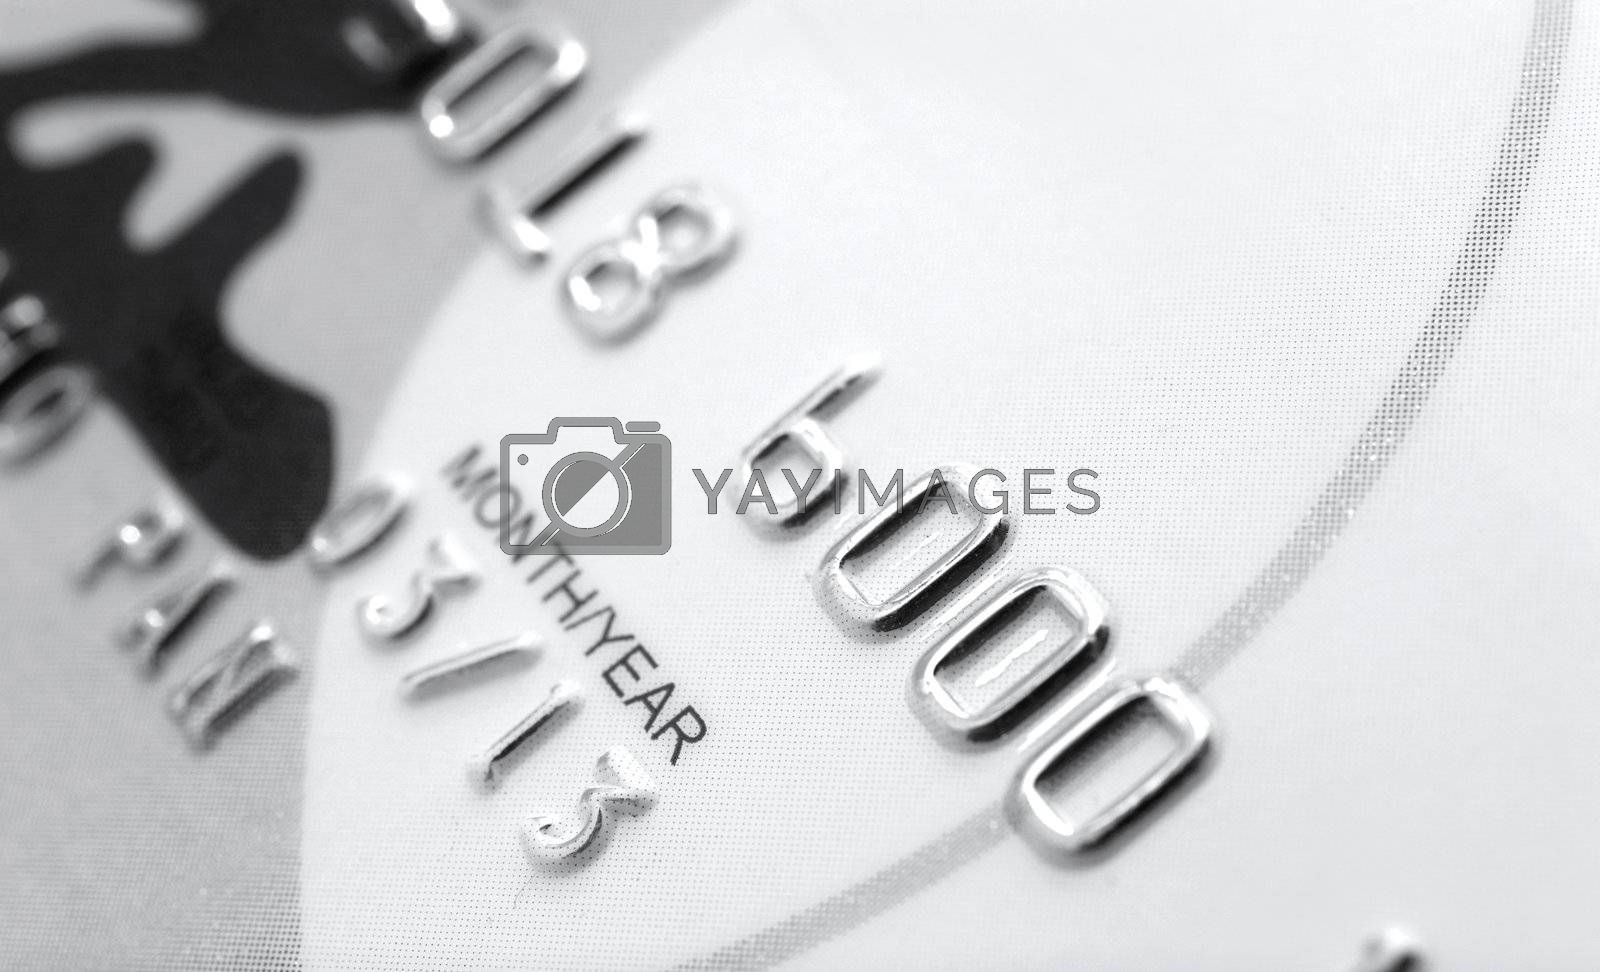 Royalty free image of credit card by leungchopan